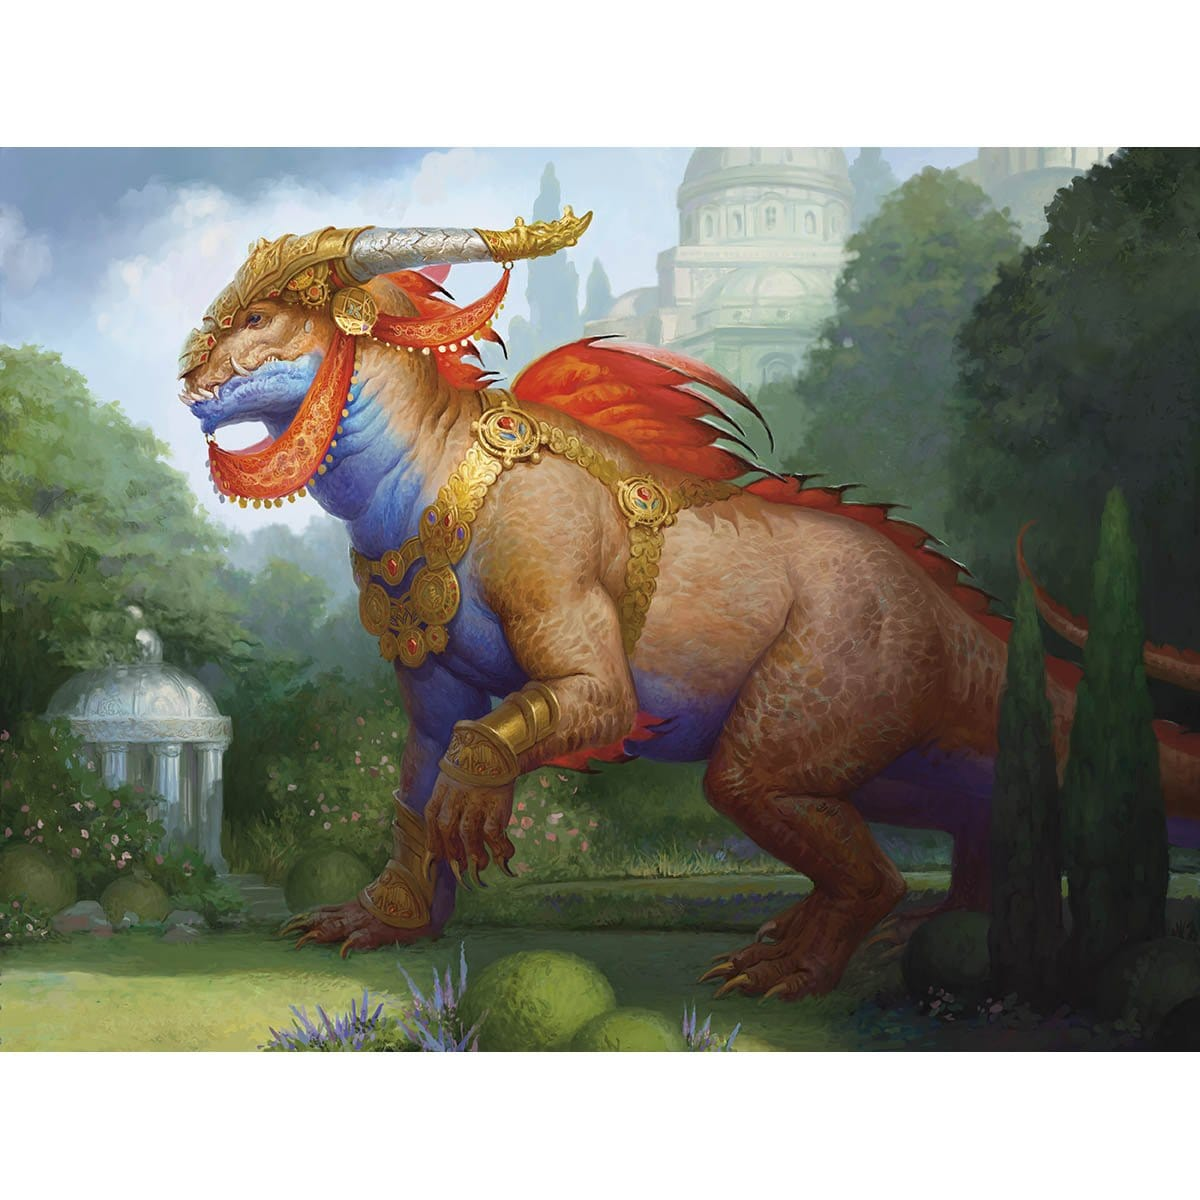 Regal Behemoth Print - Print - Original Magic Art - Accessories for Magic the Gathering and other card games